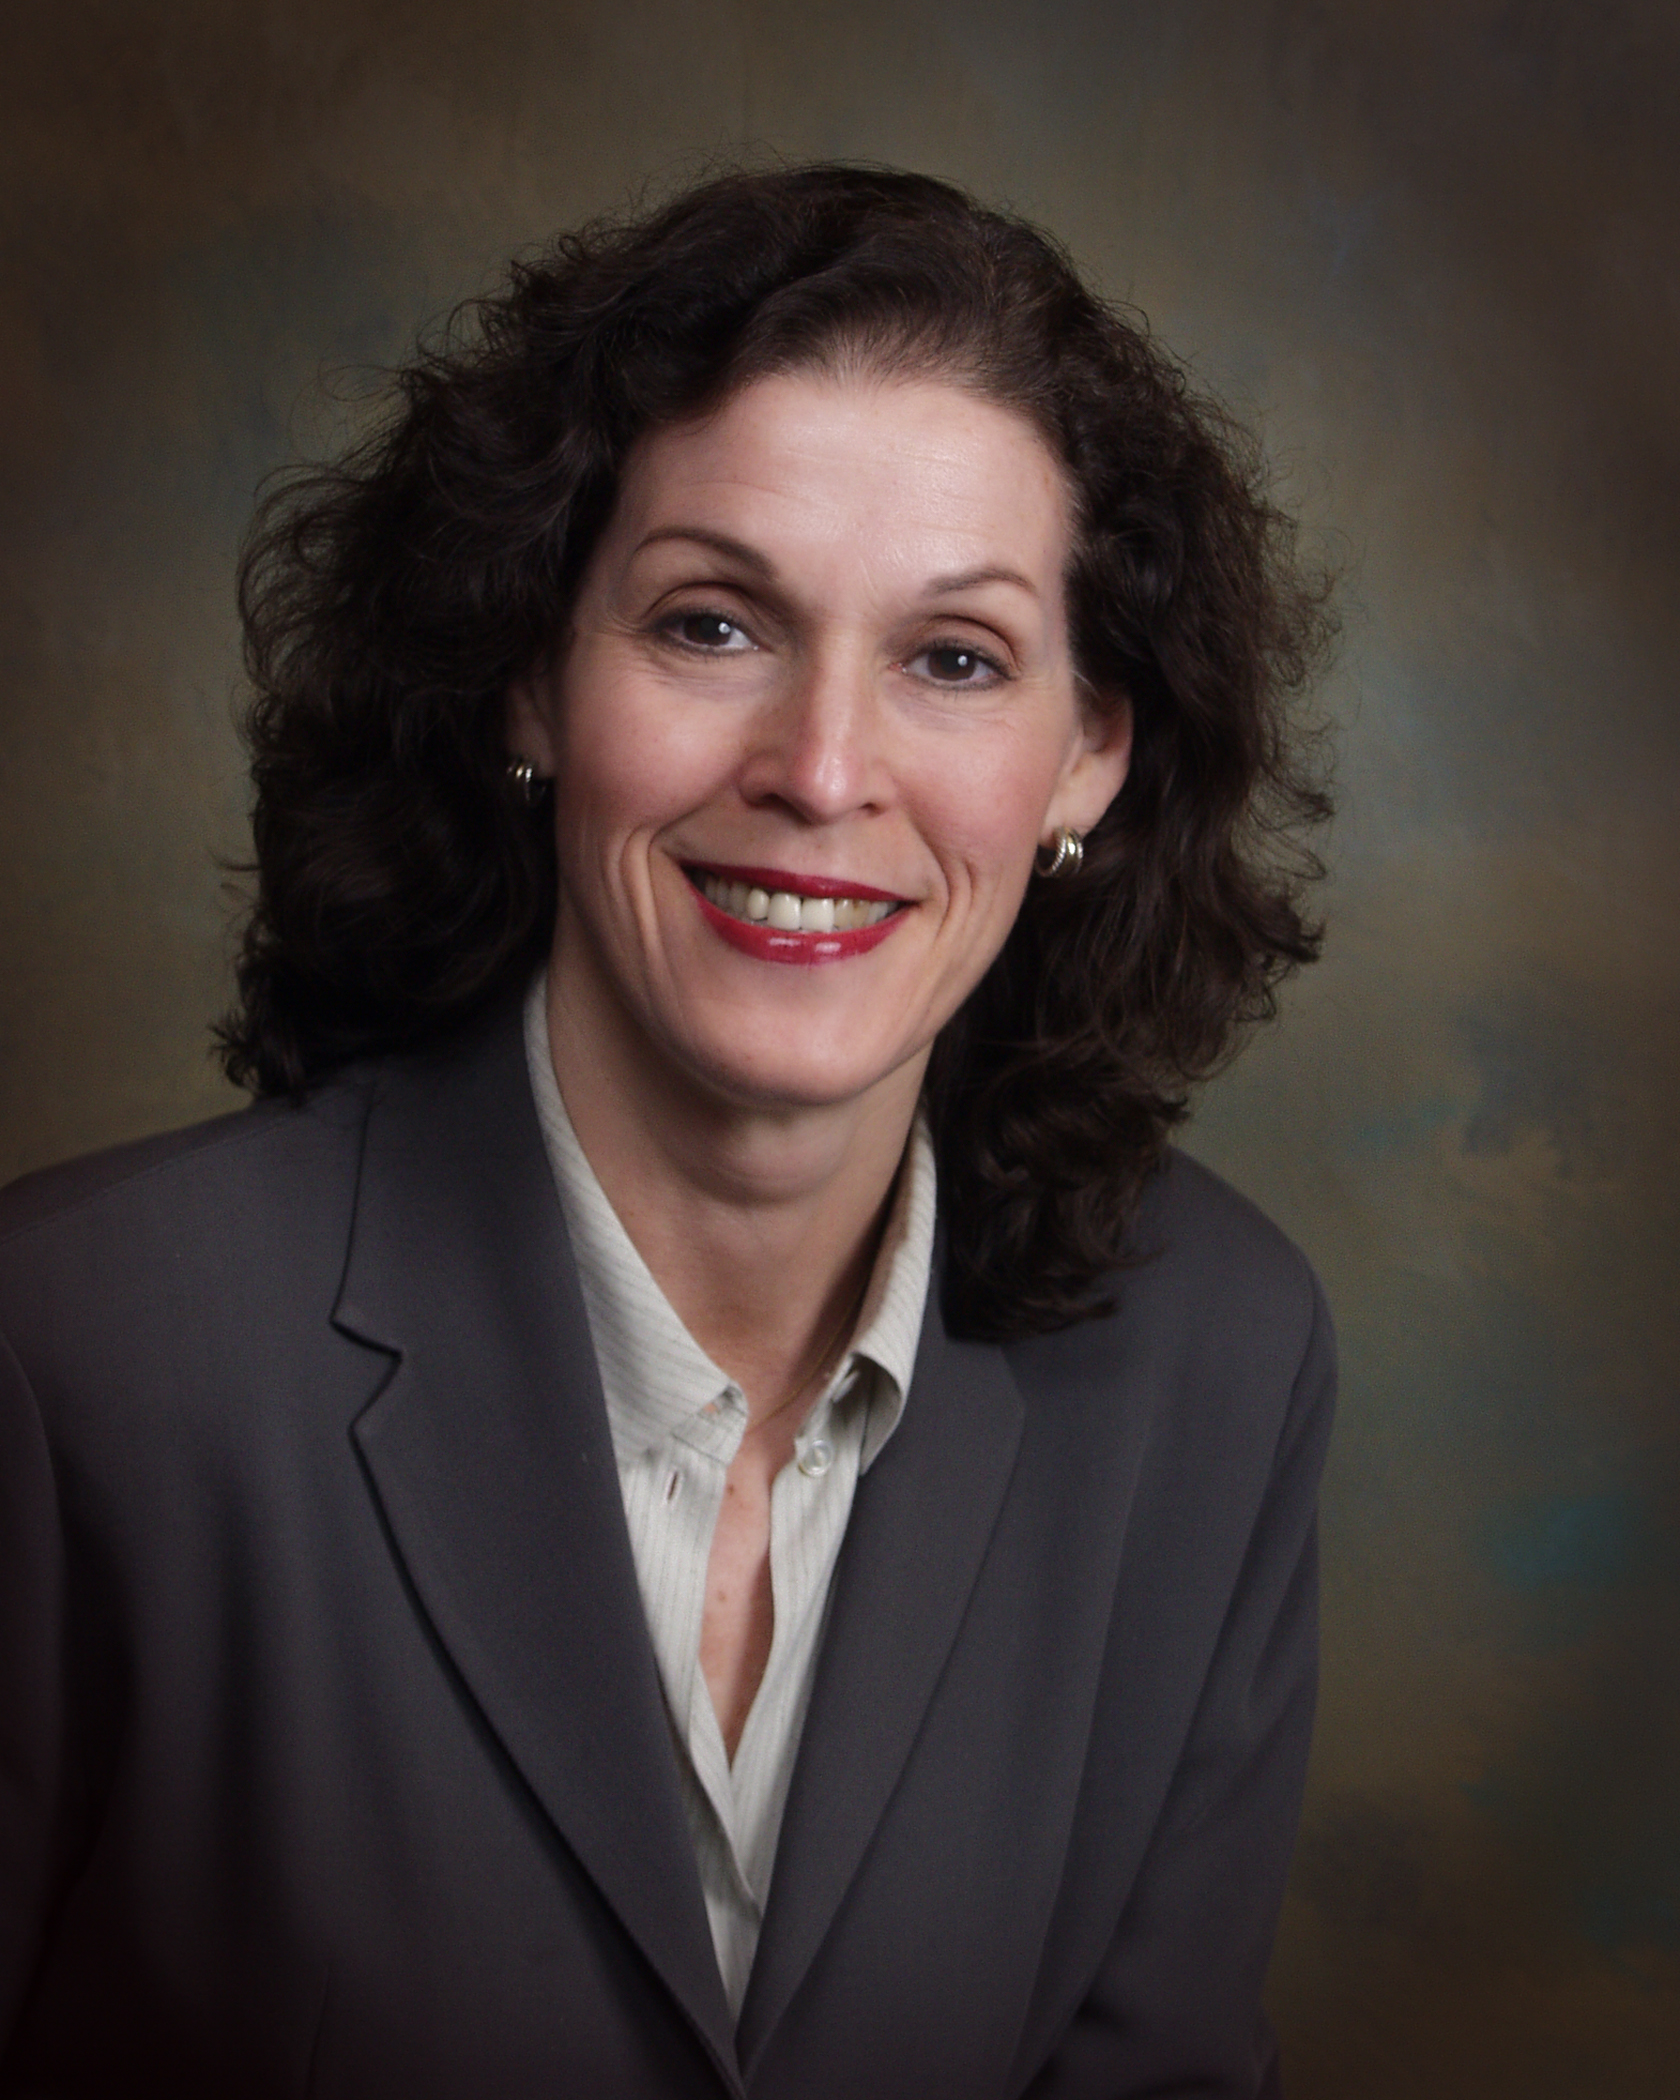 Risa Kagan - Risa Kagan, MD, FACOG, CCD, NCMP. Dr. Kagan is a board certified obstetrician-gynecologist, a graduate of NY University and the Albany Medical College of Union University. In addition to her own practice, she is a full time Clinical Professor in the Department of Obstetrics, Gynecology, and Reproductive Sciences at USCF. She also conducts clinical research with the Sutter East Bay Medical Foundation. Dr. Kagan was previously co-medical director and principal investigator (PI) for multiple clinical trials at the Foundation for Osteoporosis Research and Education (FORE) in Oakland, CA, and now serves on the Medical and Scientific Advisory Board of American Bone Health (FORE). Currently, she is a PI on numerous women's health clinical research trials with the Jordan Research and Education Institute (REDI) of the Alta Bates Summit Medical Center, Sutter Health Research Institute. Dr. Kagan is the author or co-author of numerous publications in peer reviewed journals and is on the editorial board of Menopause. She is often an ad hoc reviewer for many other journals including the Journal of Women's Health and The Journal of Sexual Medicine.She is a NAMS certified Menopause Practitioner and is certified by the International Society of Clinical Densitometry. She specializes in gynecology with particular focus on gynecologic surgery and women's health issues including menopause, bone health, female sexuality, and female cancer survivorship. She serves on many committees developing standards for many of these women's health issues. She is actively involved in many professional organizations including the NAMS, where she was on the Board of Trustees from 2006- 2012. Dr. Kagan speaks on women health panels both nationally and internationally.Dr. Kagan has been listed for many years as one of the best Bay Area physicians in San Francisco and Oakland Magazines and nationally listed in US Best Doctors .